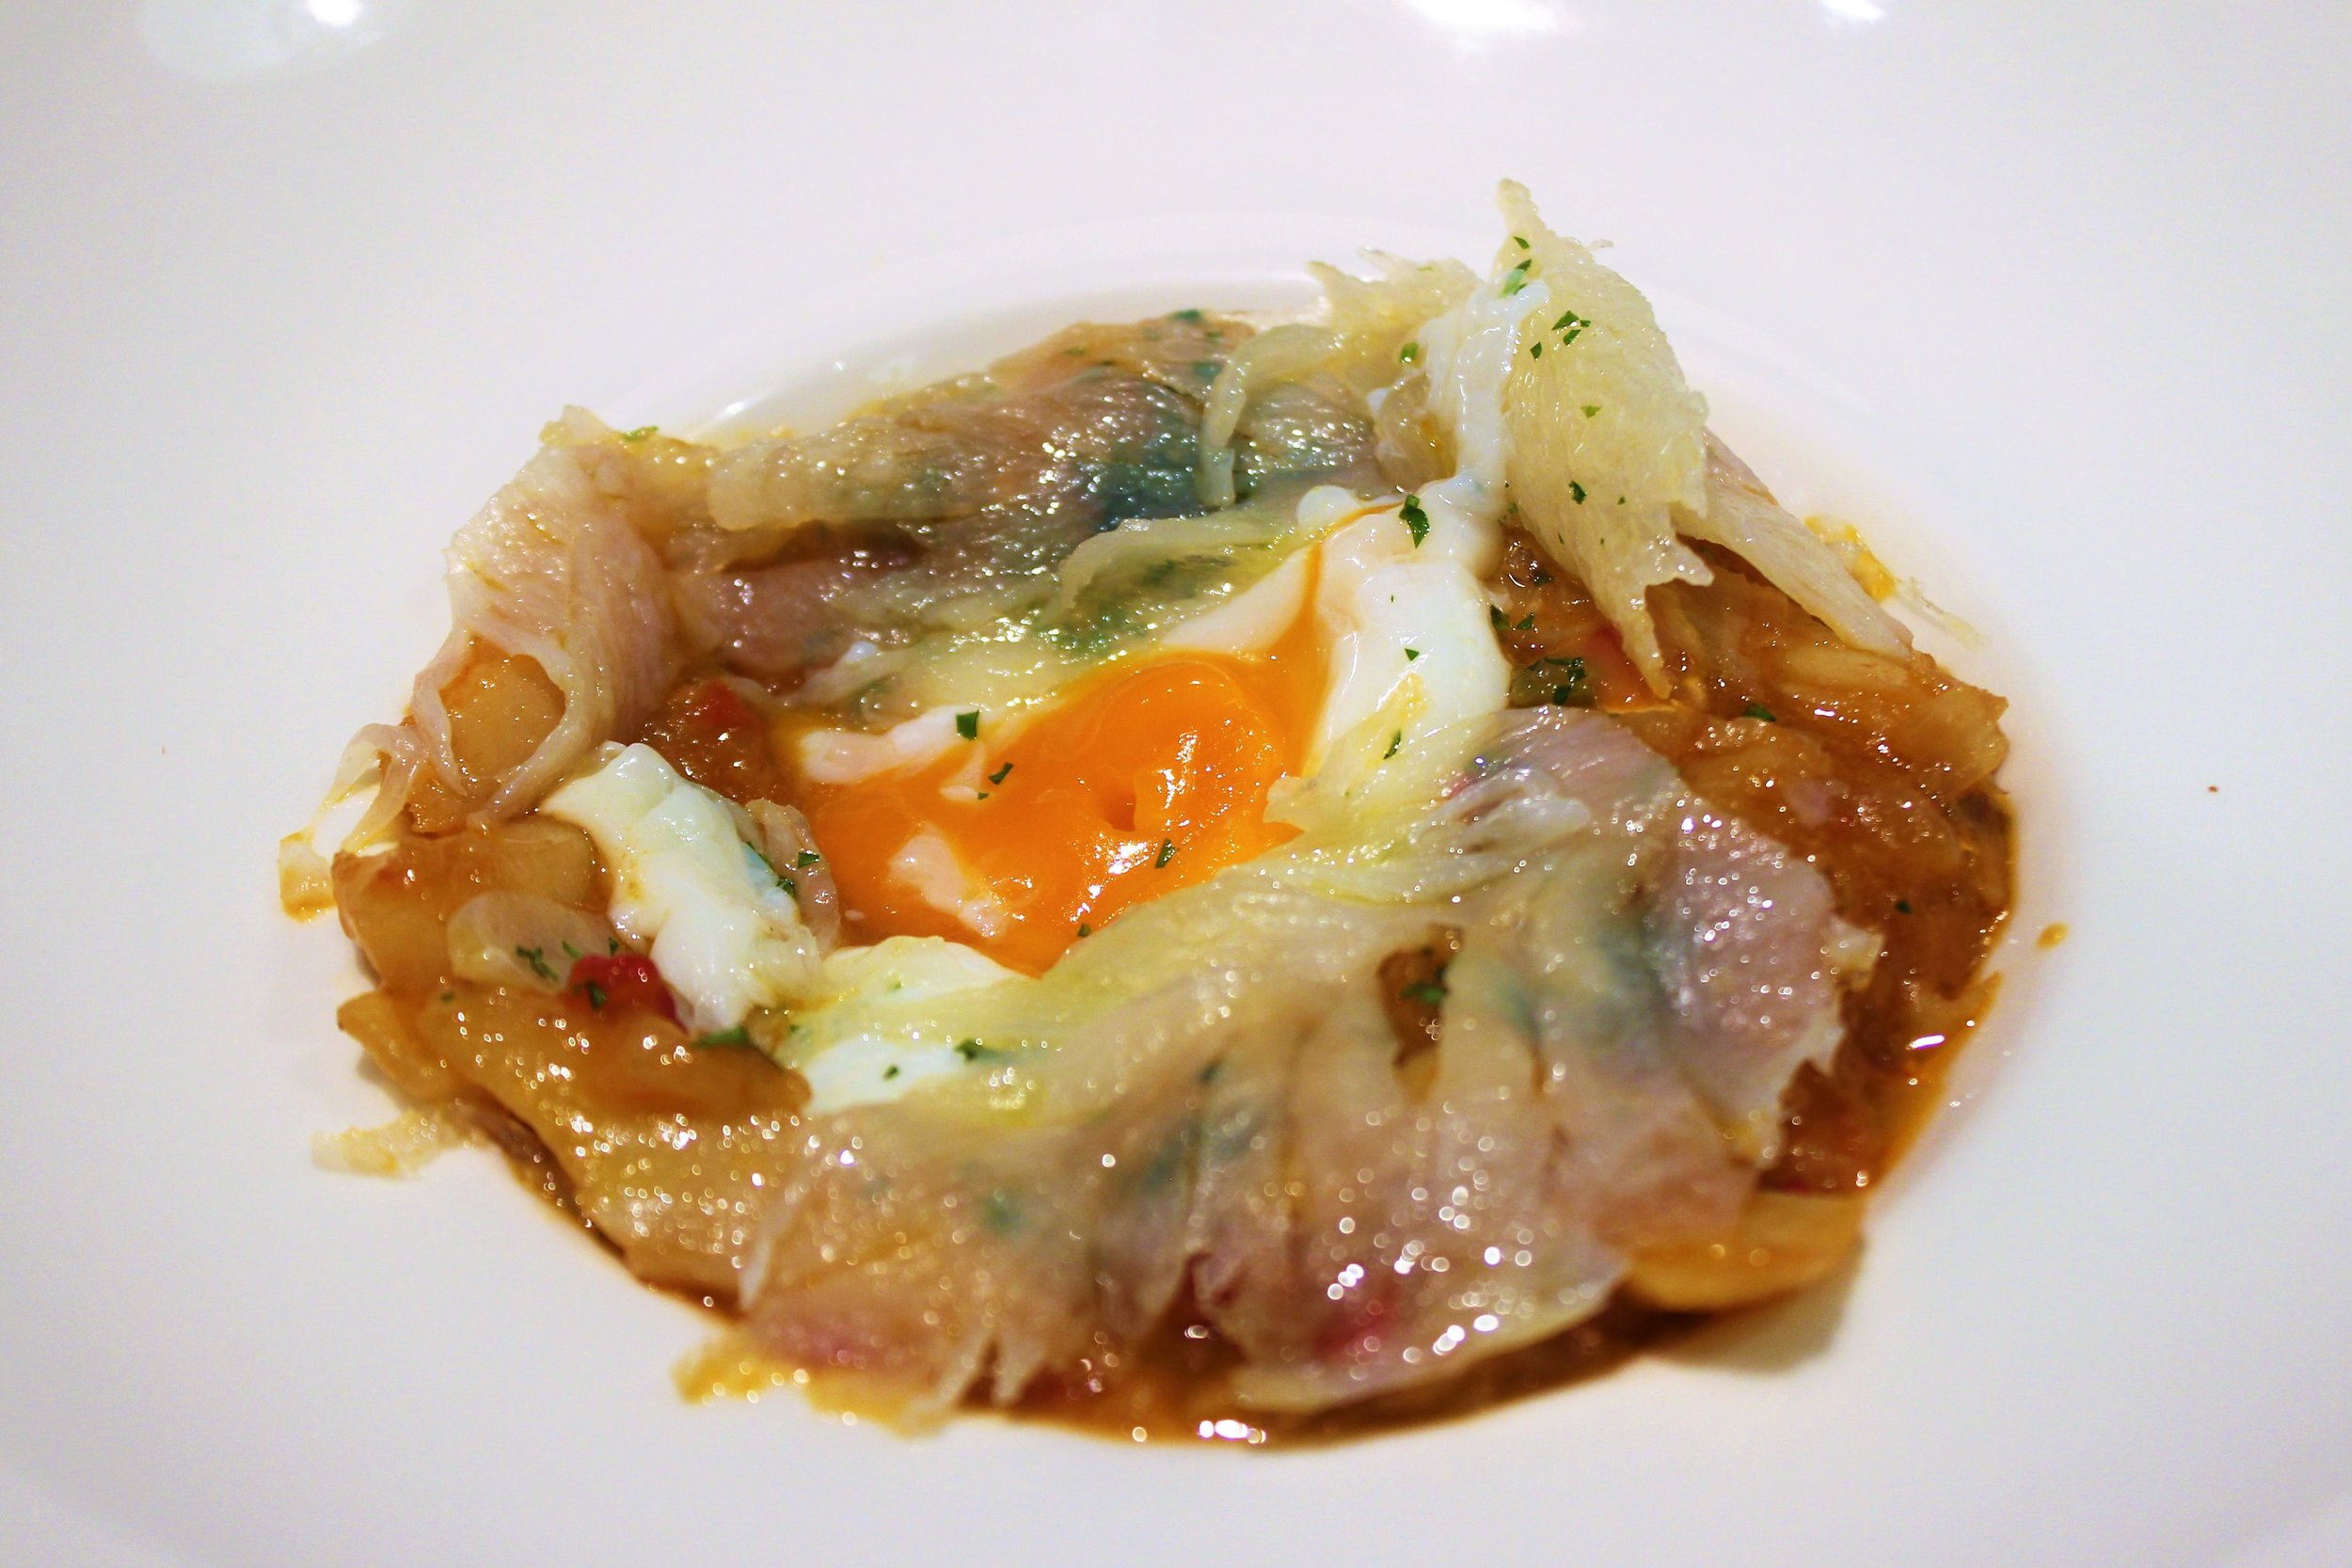 Ajoarriero Cod with Poached Egg at Igueldo in Barcelona